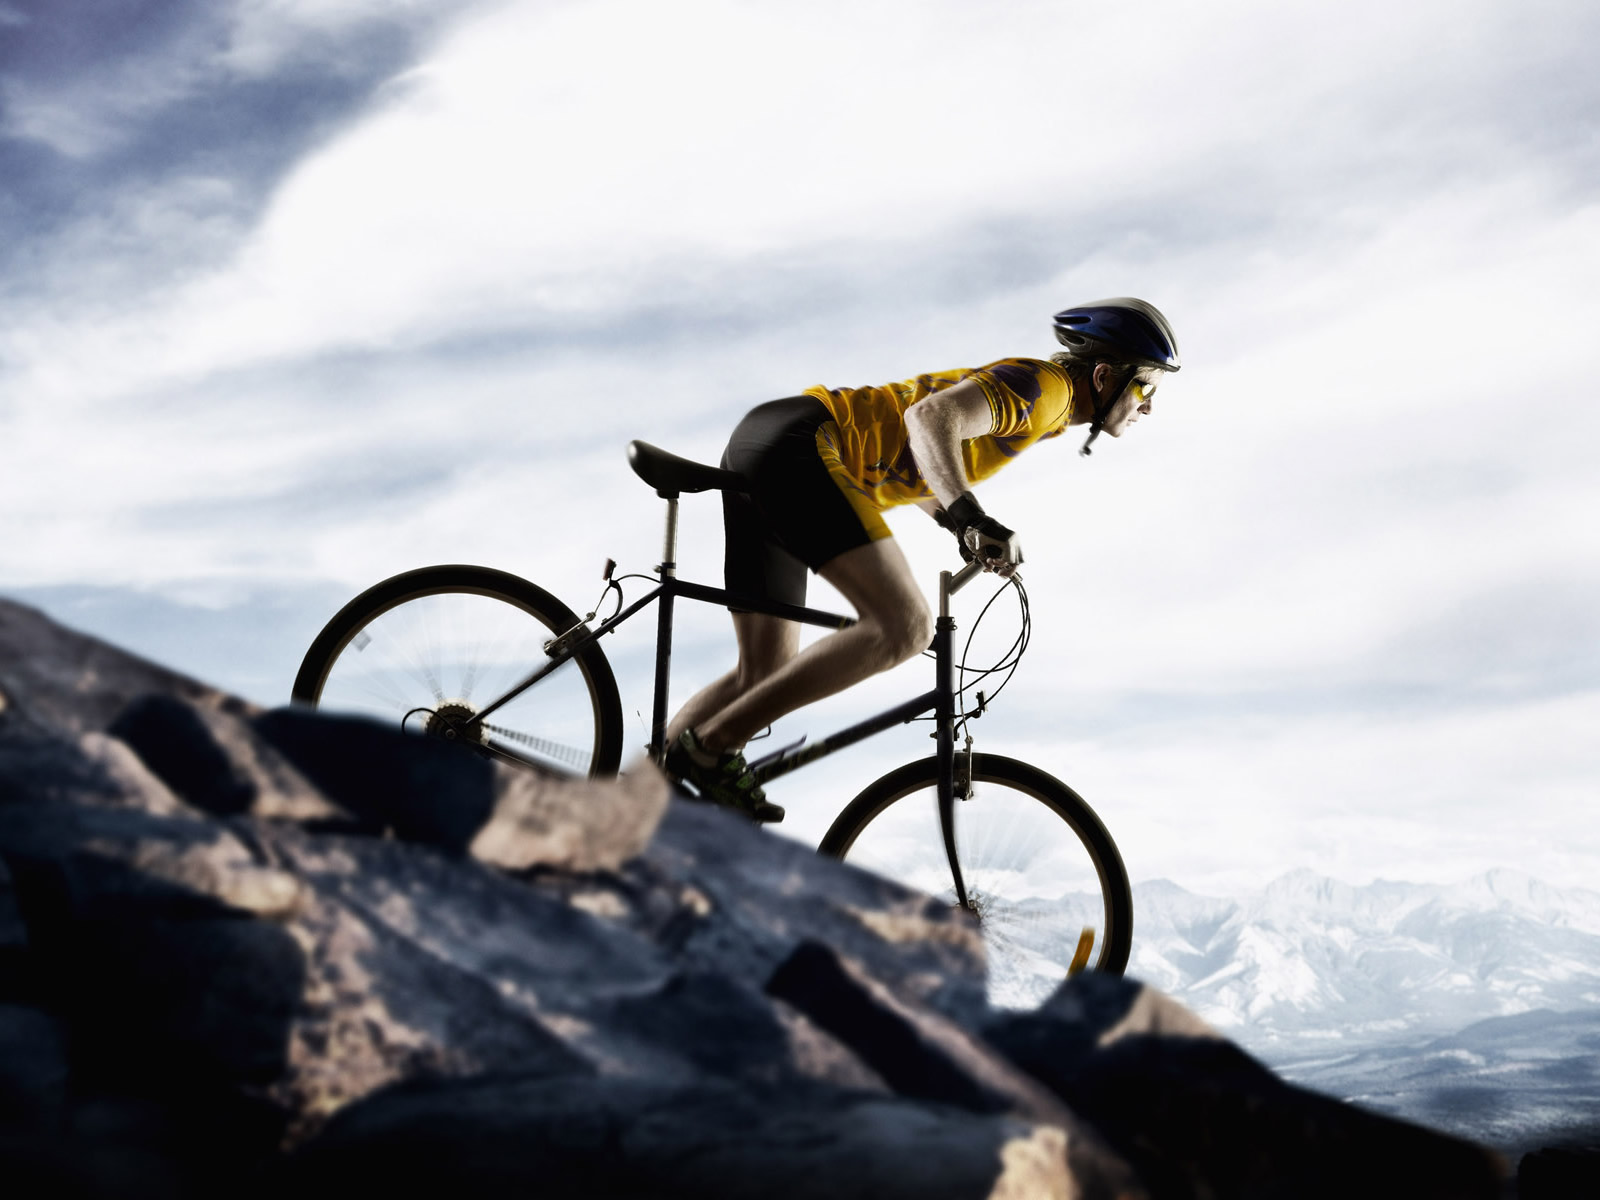 1600x1200 Mountain bike desktop wallpapers and stock photos